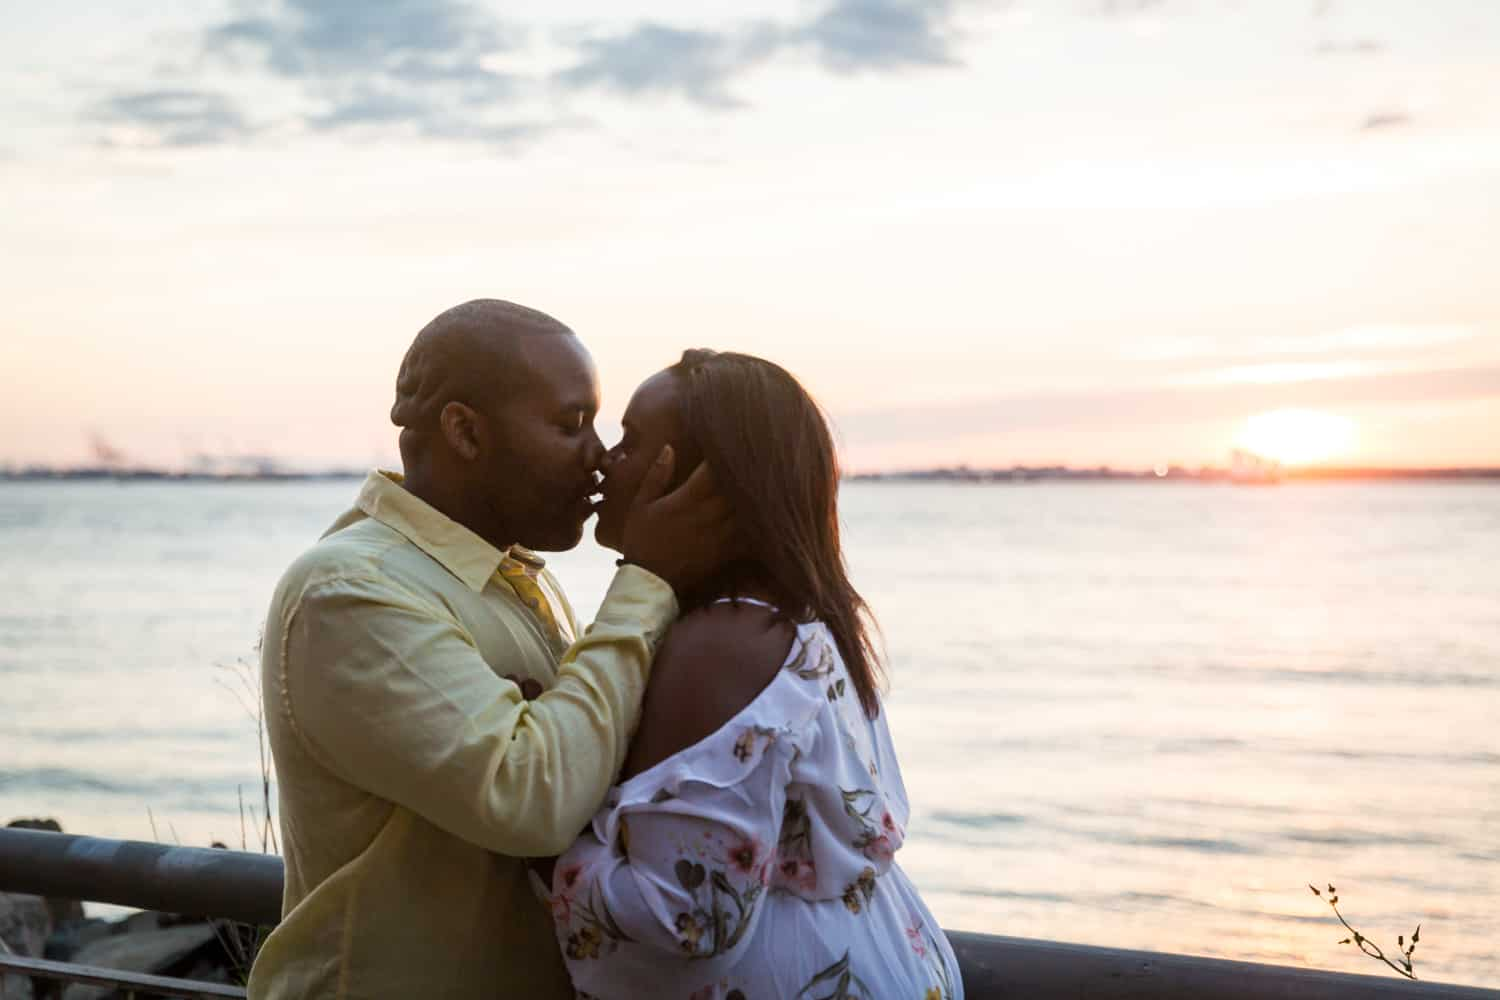 Couple about to kiss in front of NYC waterfront for an article on creative engagement photo shoot ideas